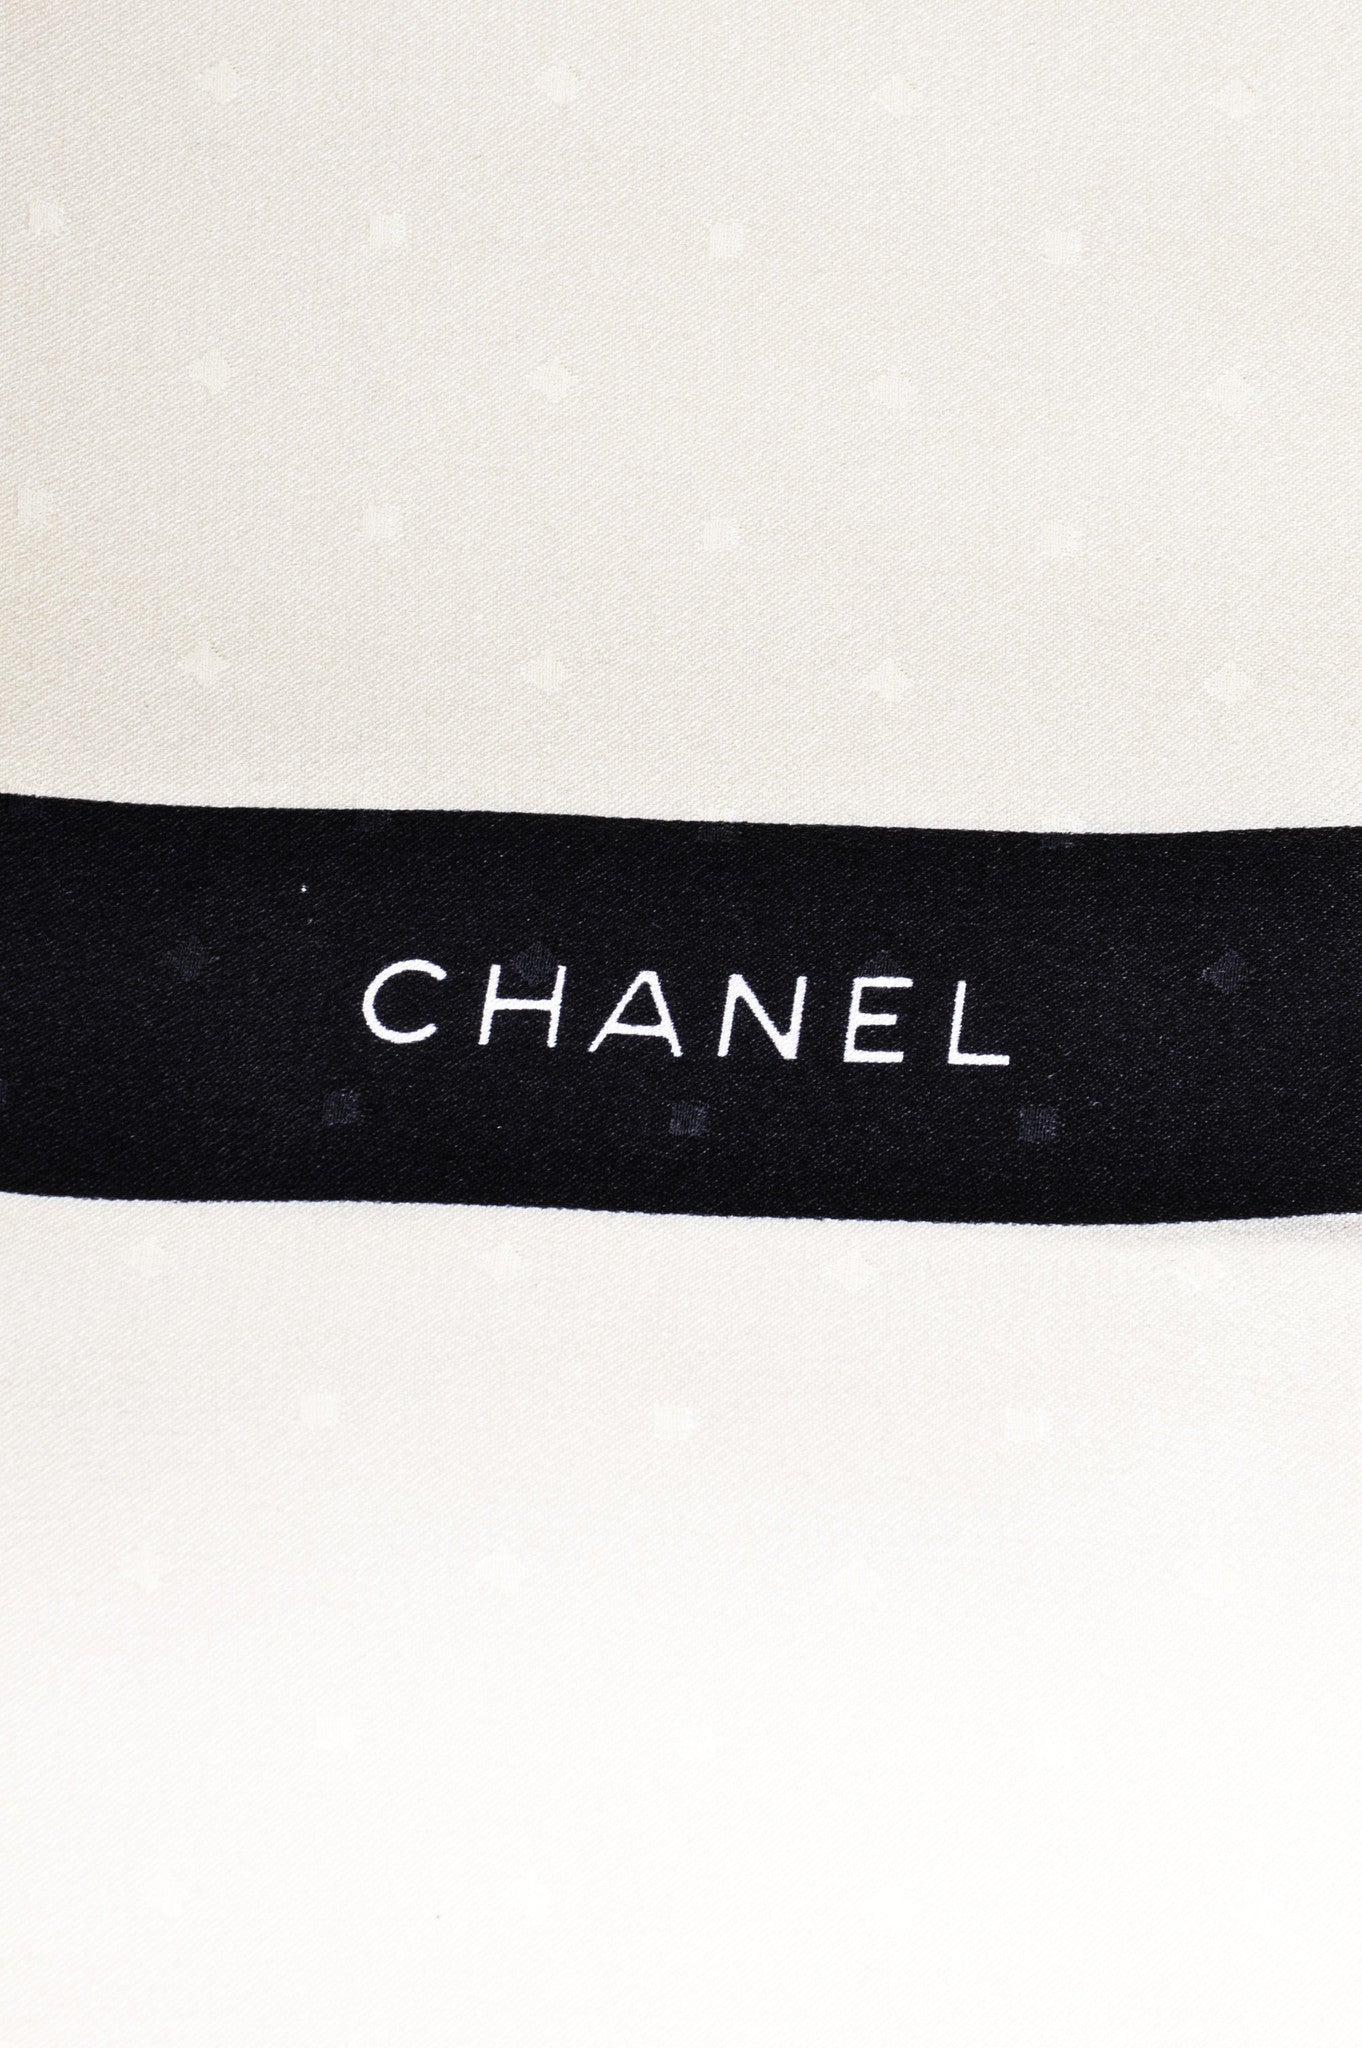 Chanel Cream and Black Textured Silk Bow Print Long Scarf Brand